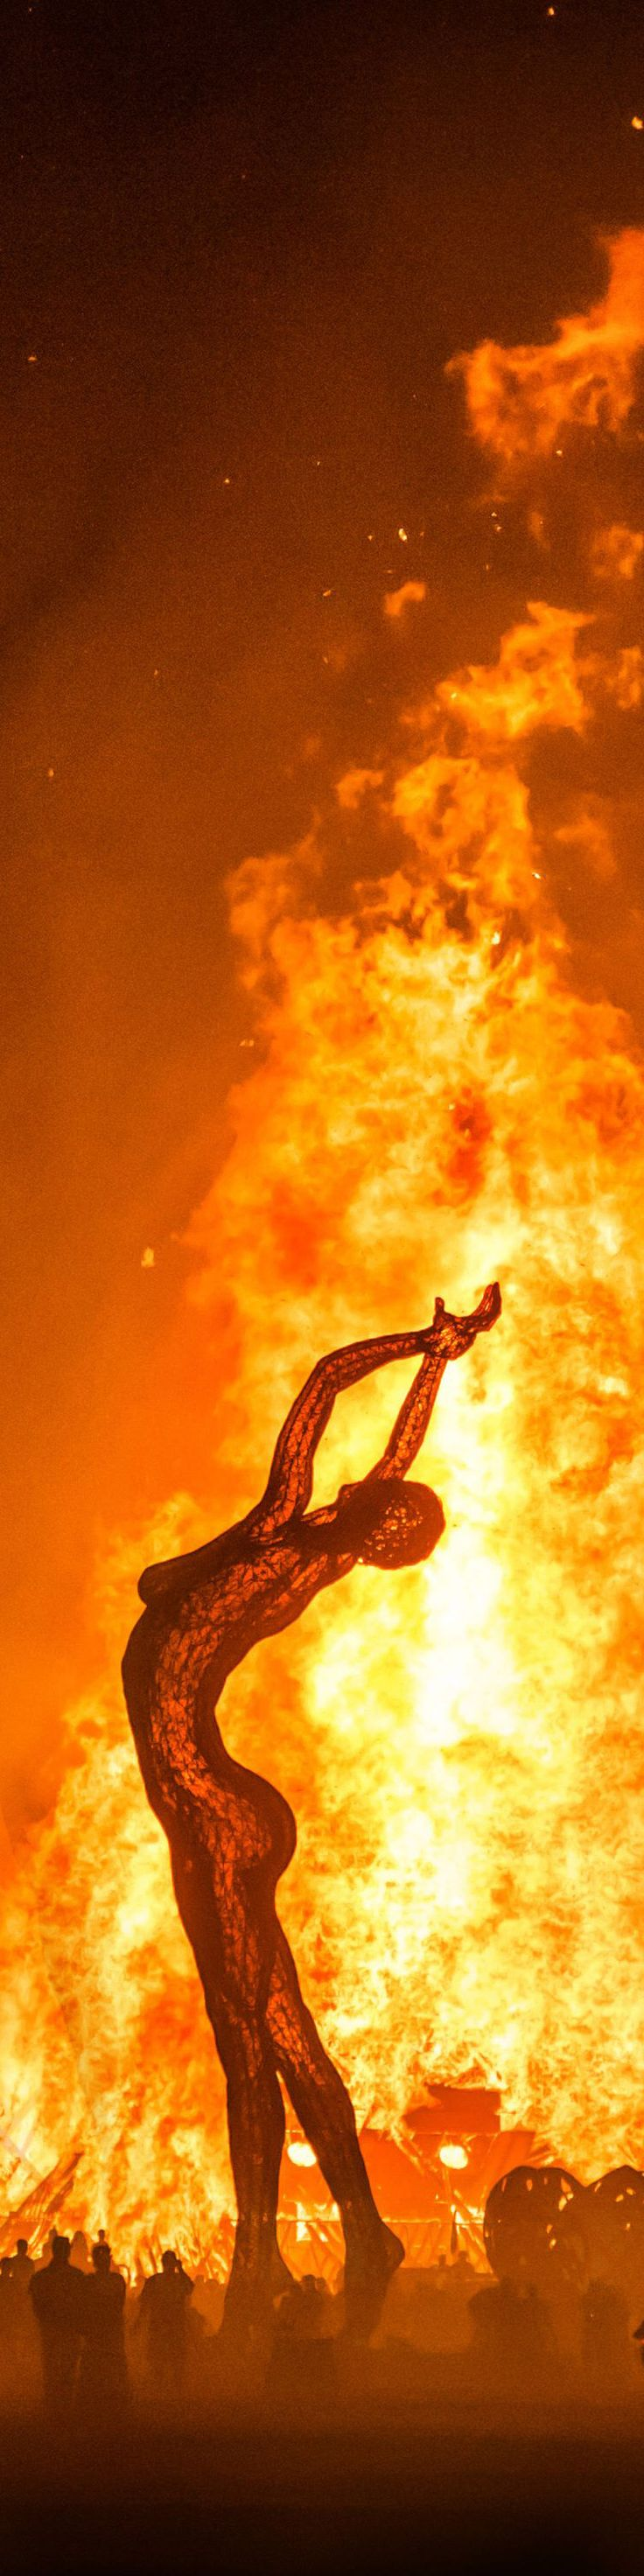 "The Final Burn - from the Exhibition: ""Cropped for Pinterest"" - photo from #treyratcliff Trey Ratcliff at www.StuckInCustoms.com #BurningMan"